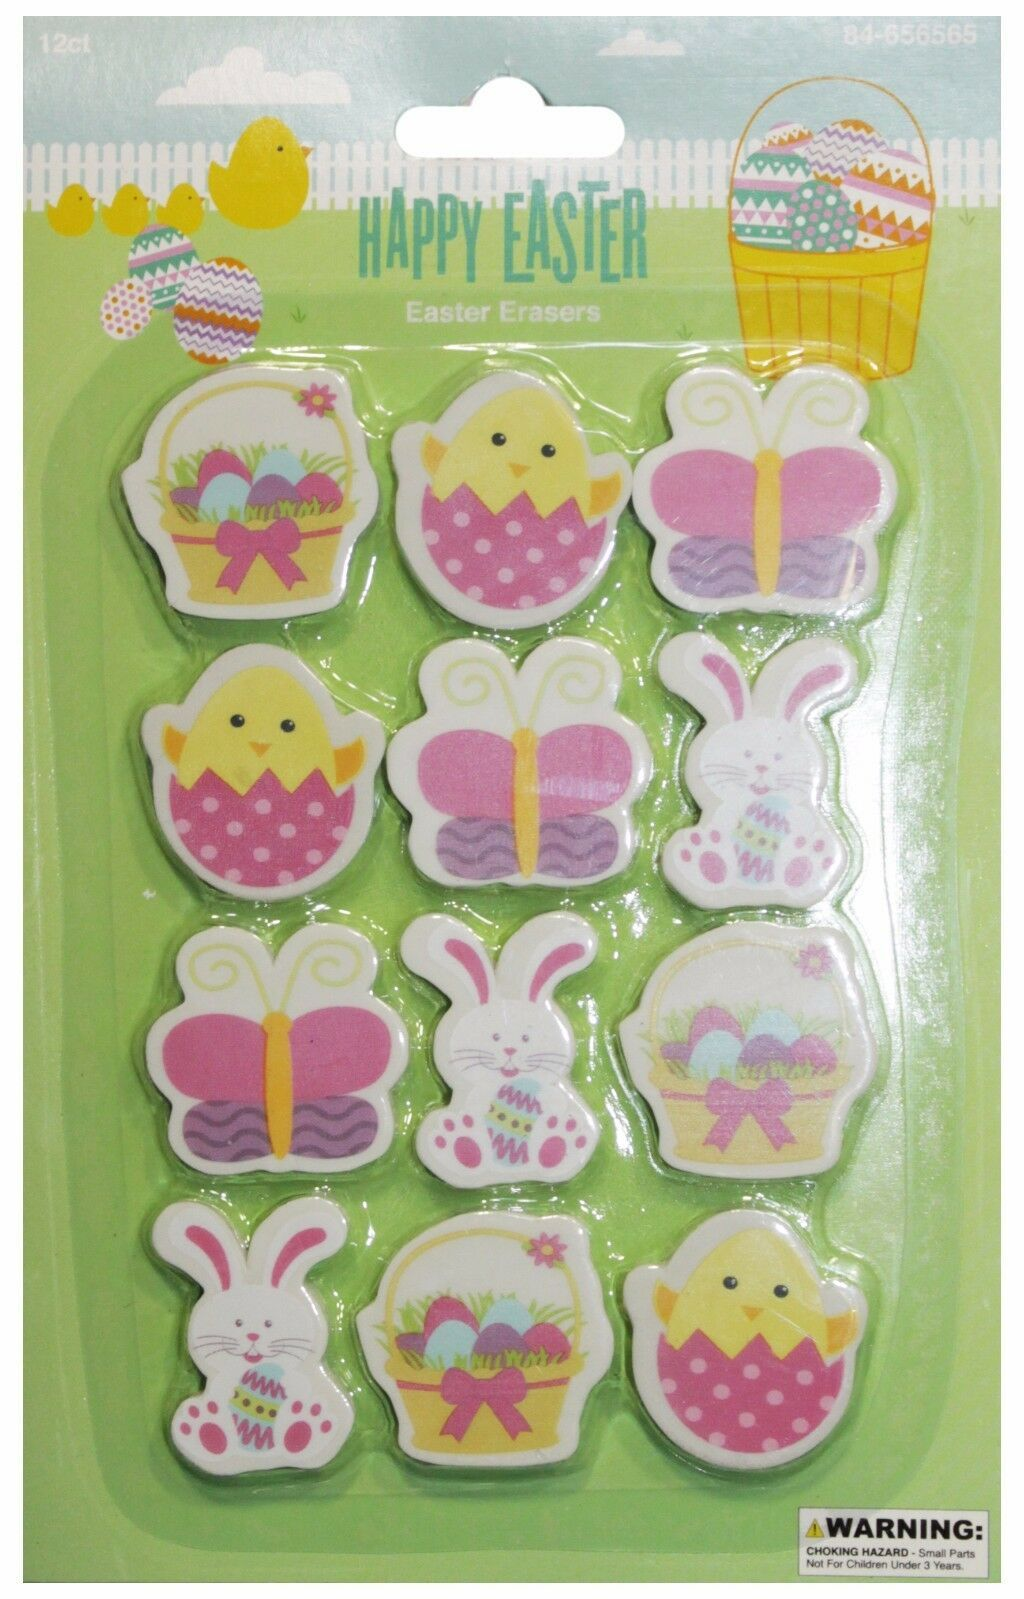 MOMENTUM* 12pc EASTER Bunnies+Chicks+Eggs+More NOVELTY ERASERS New! *YOU CHOOSE* image 2